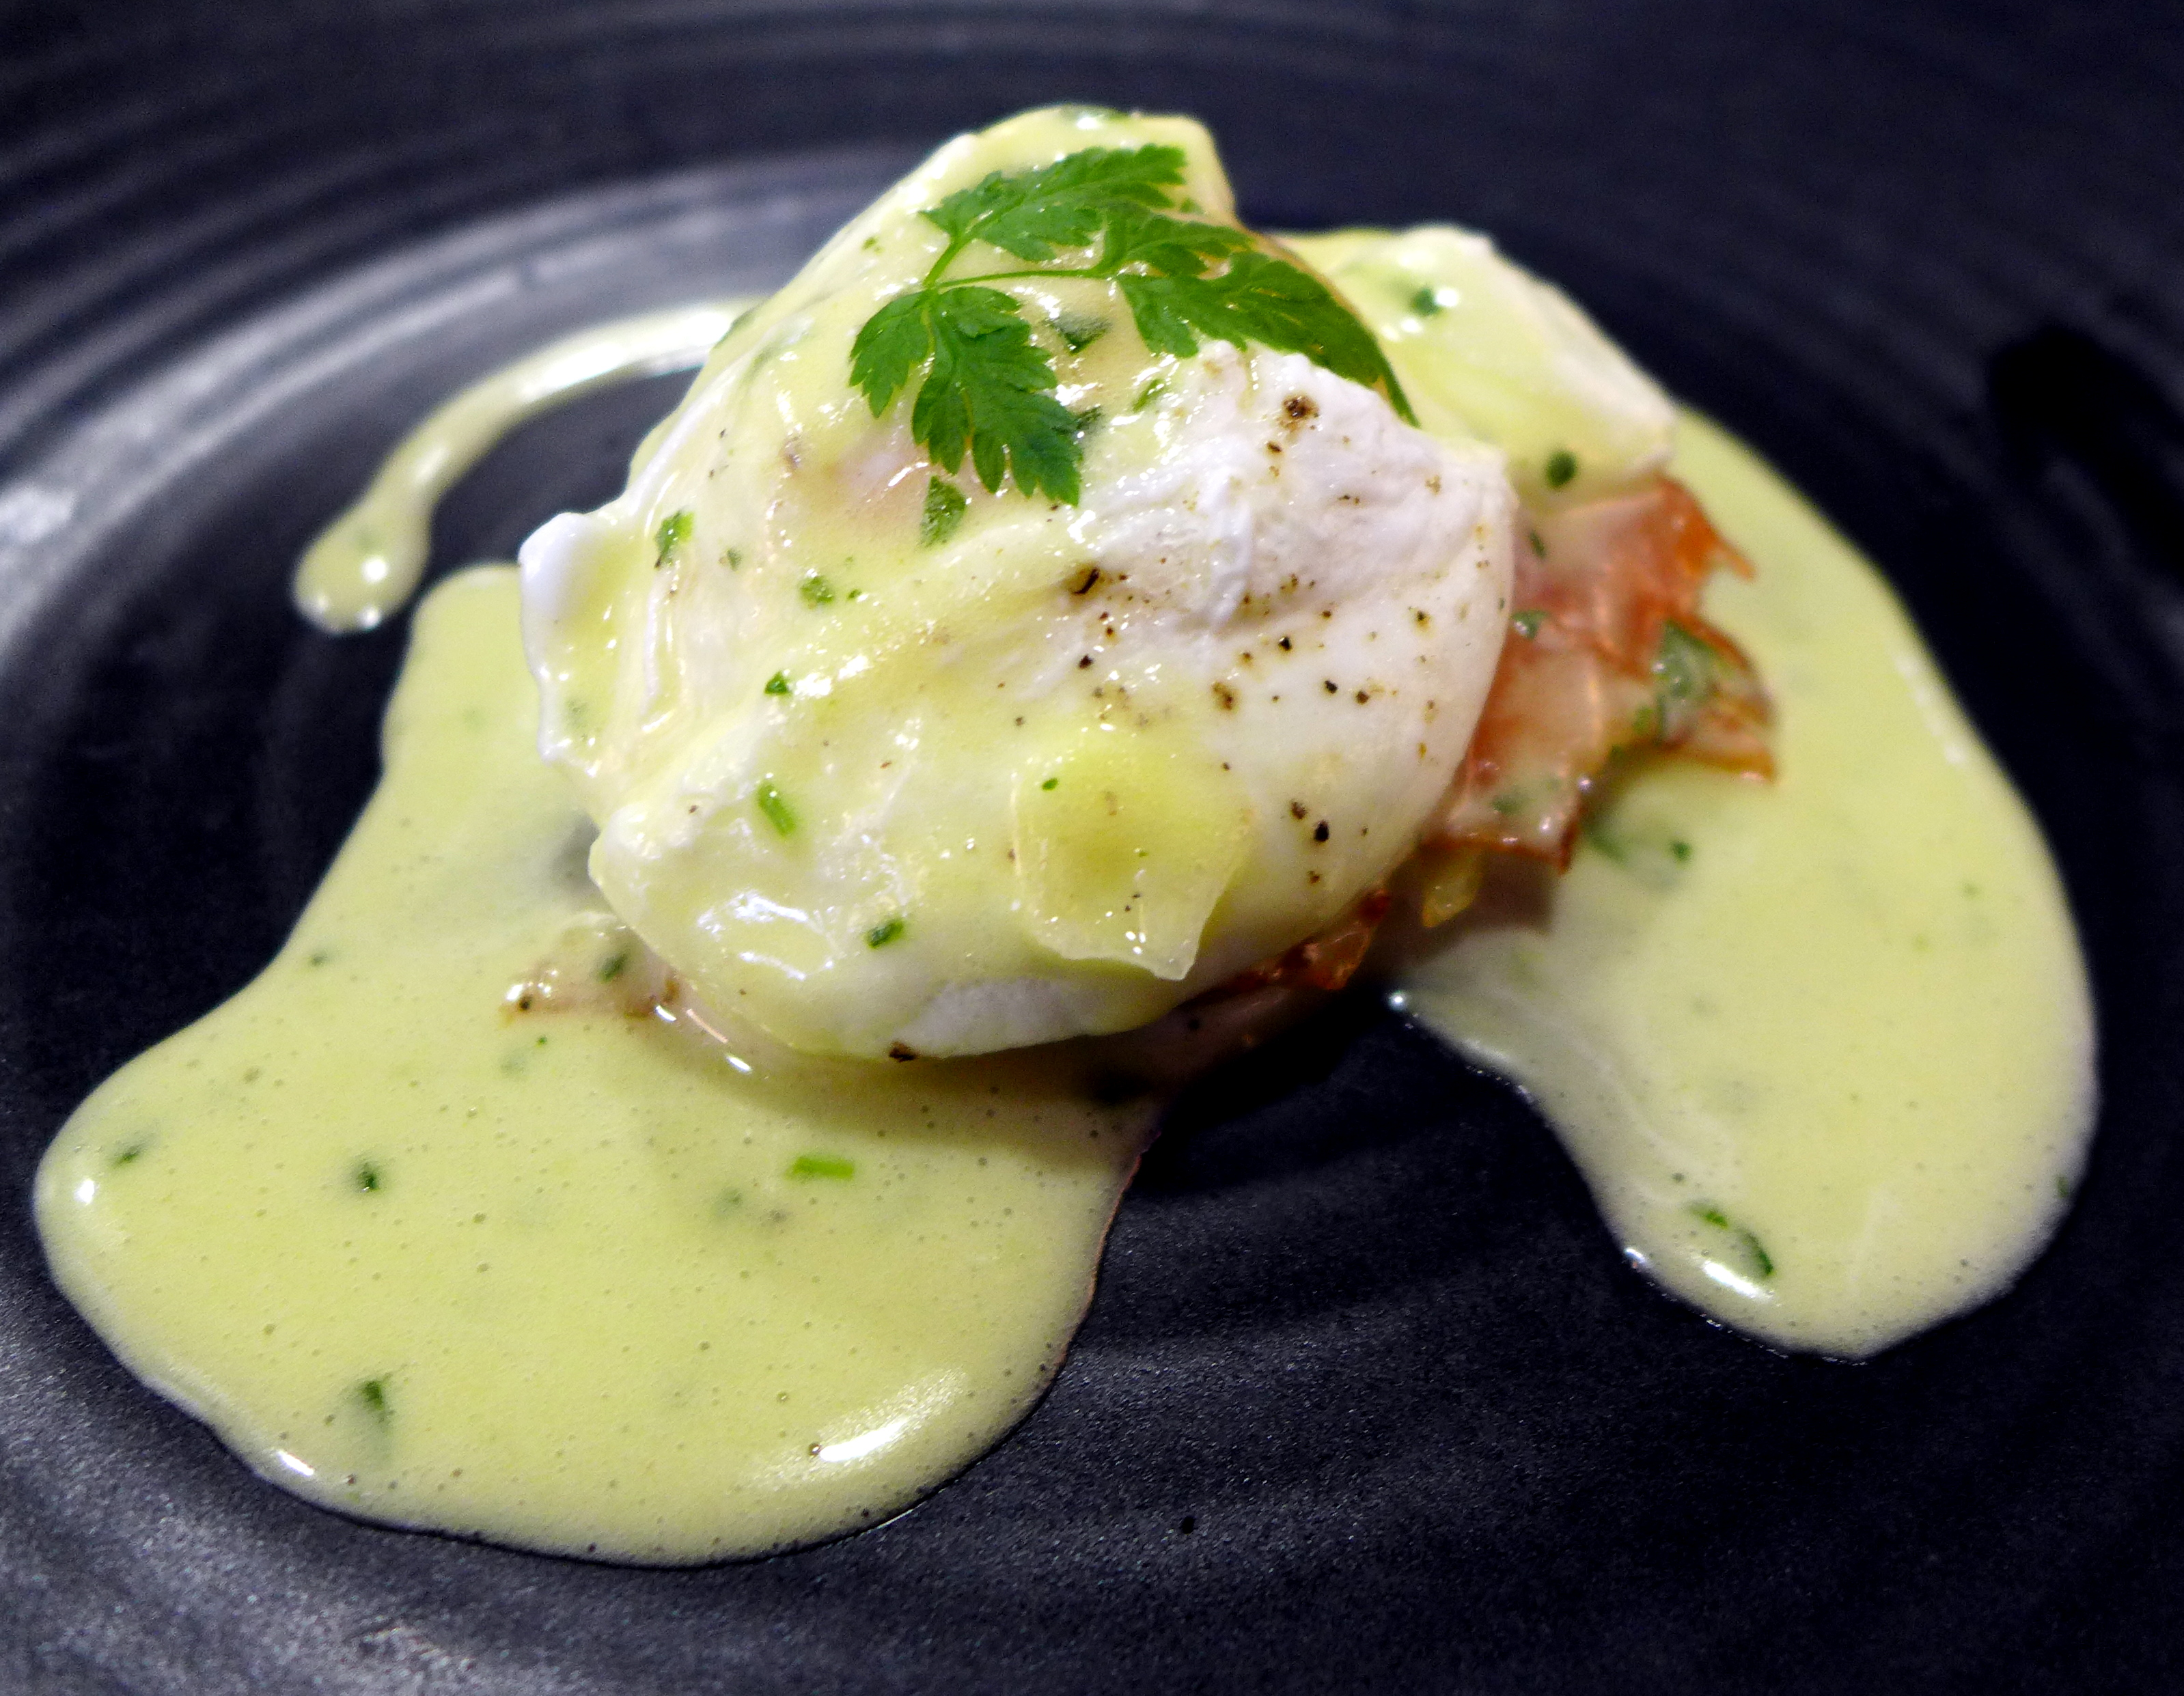 Poached egg on grated potatoes and smoked salmon with a hollandaise/bernaise sauce